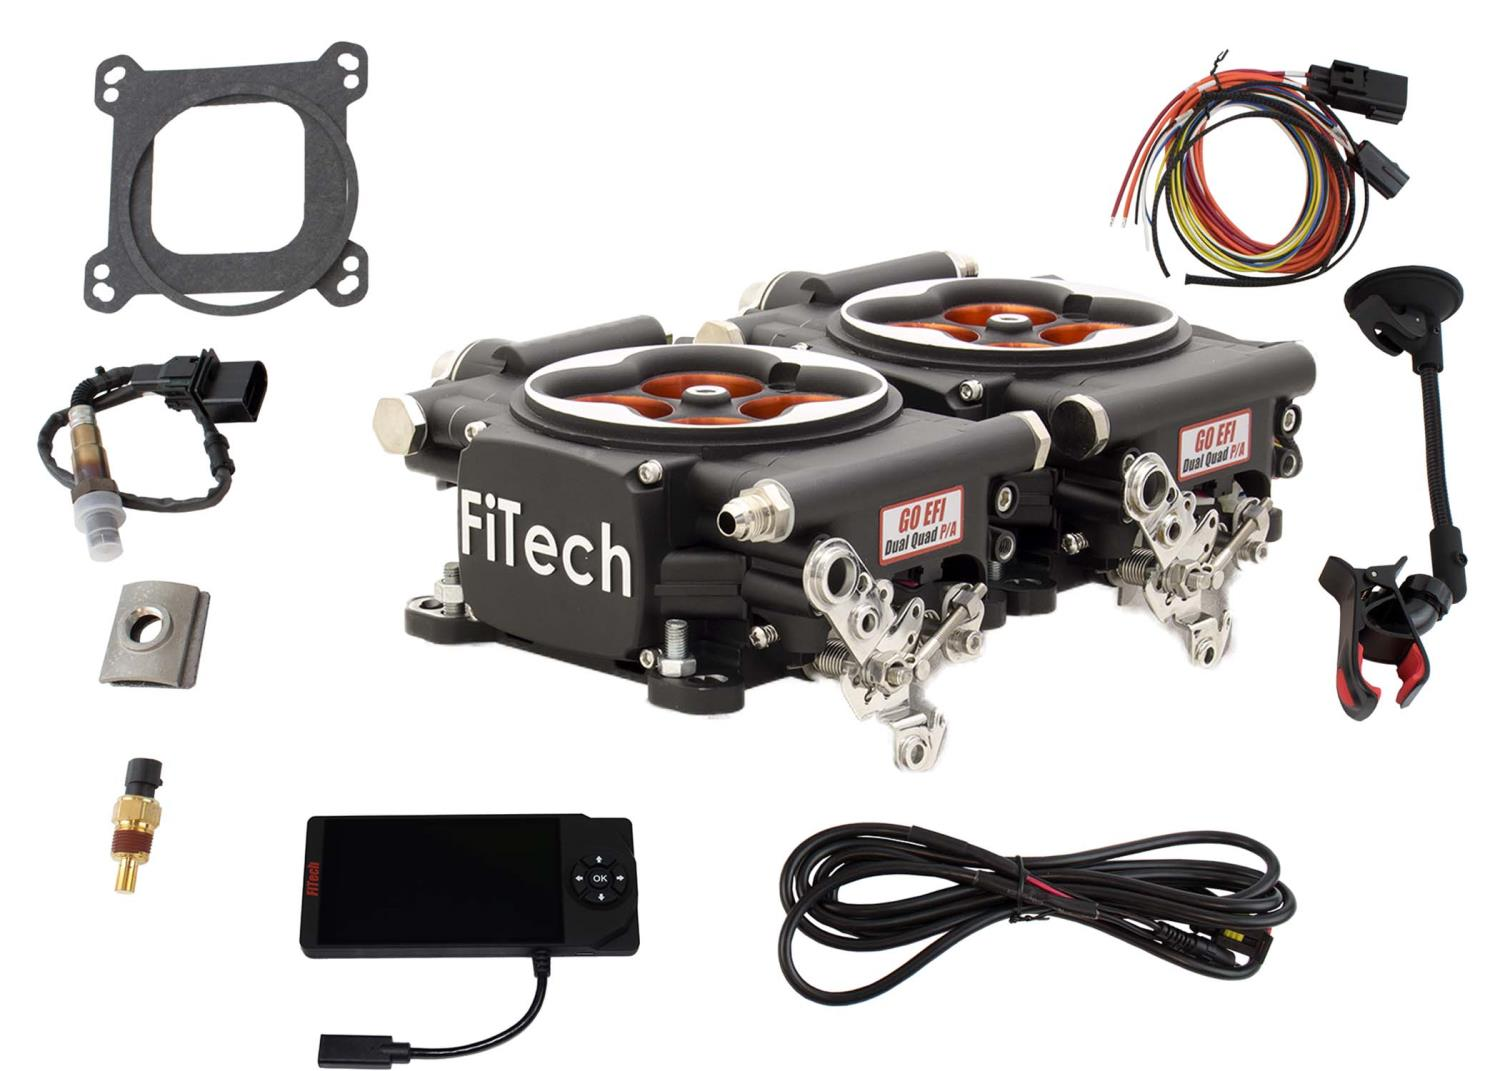 FITech Fuel Injection Go EFI 2x4 1200 HP Power Adder Throttle Body System  Basic Kit